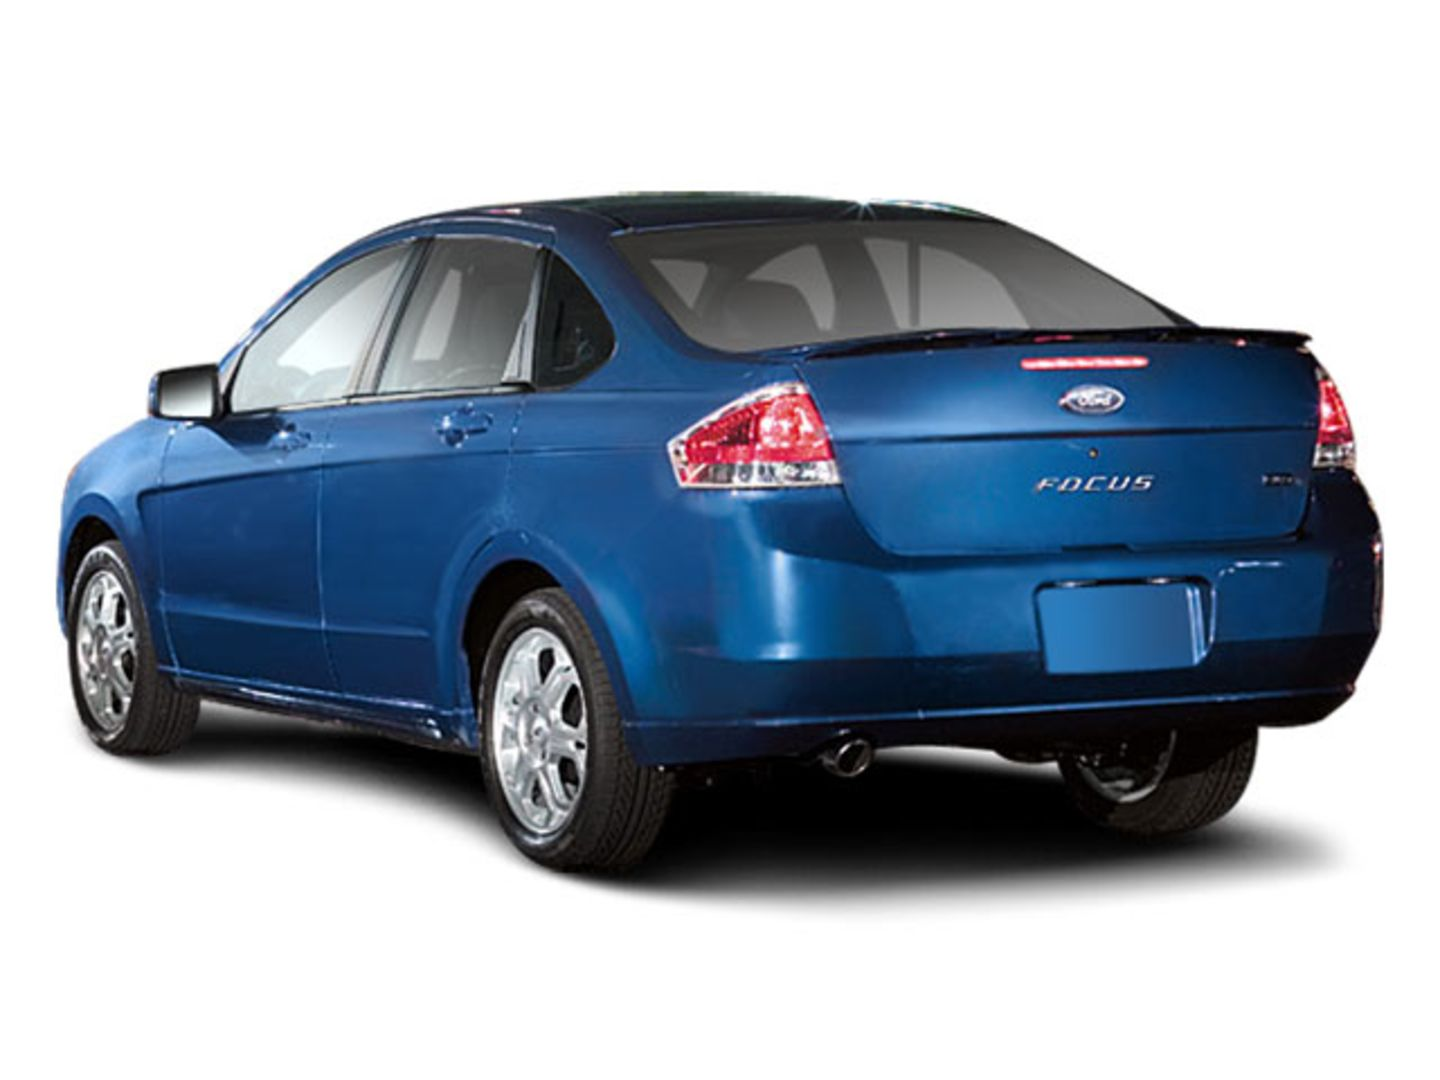 2009 Ford Focus SE for sale in Spruce Grove, Alberta